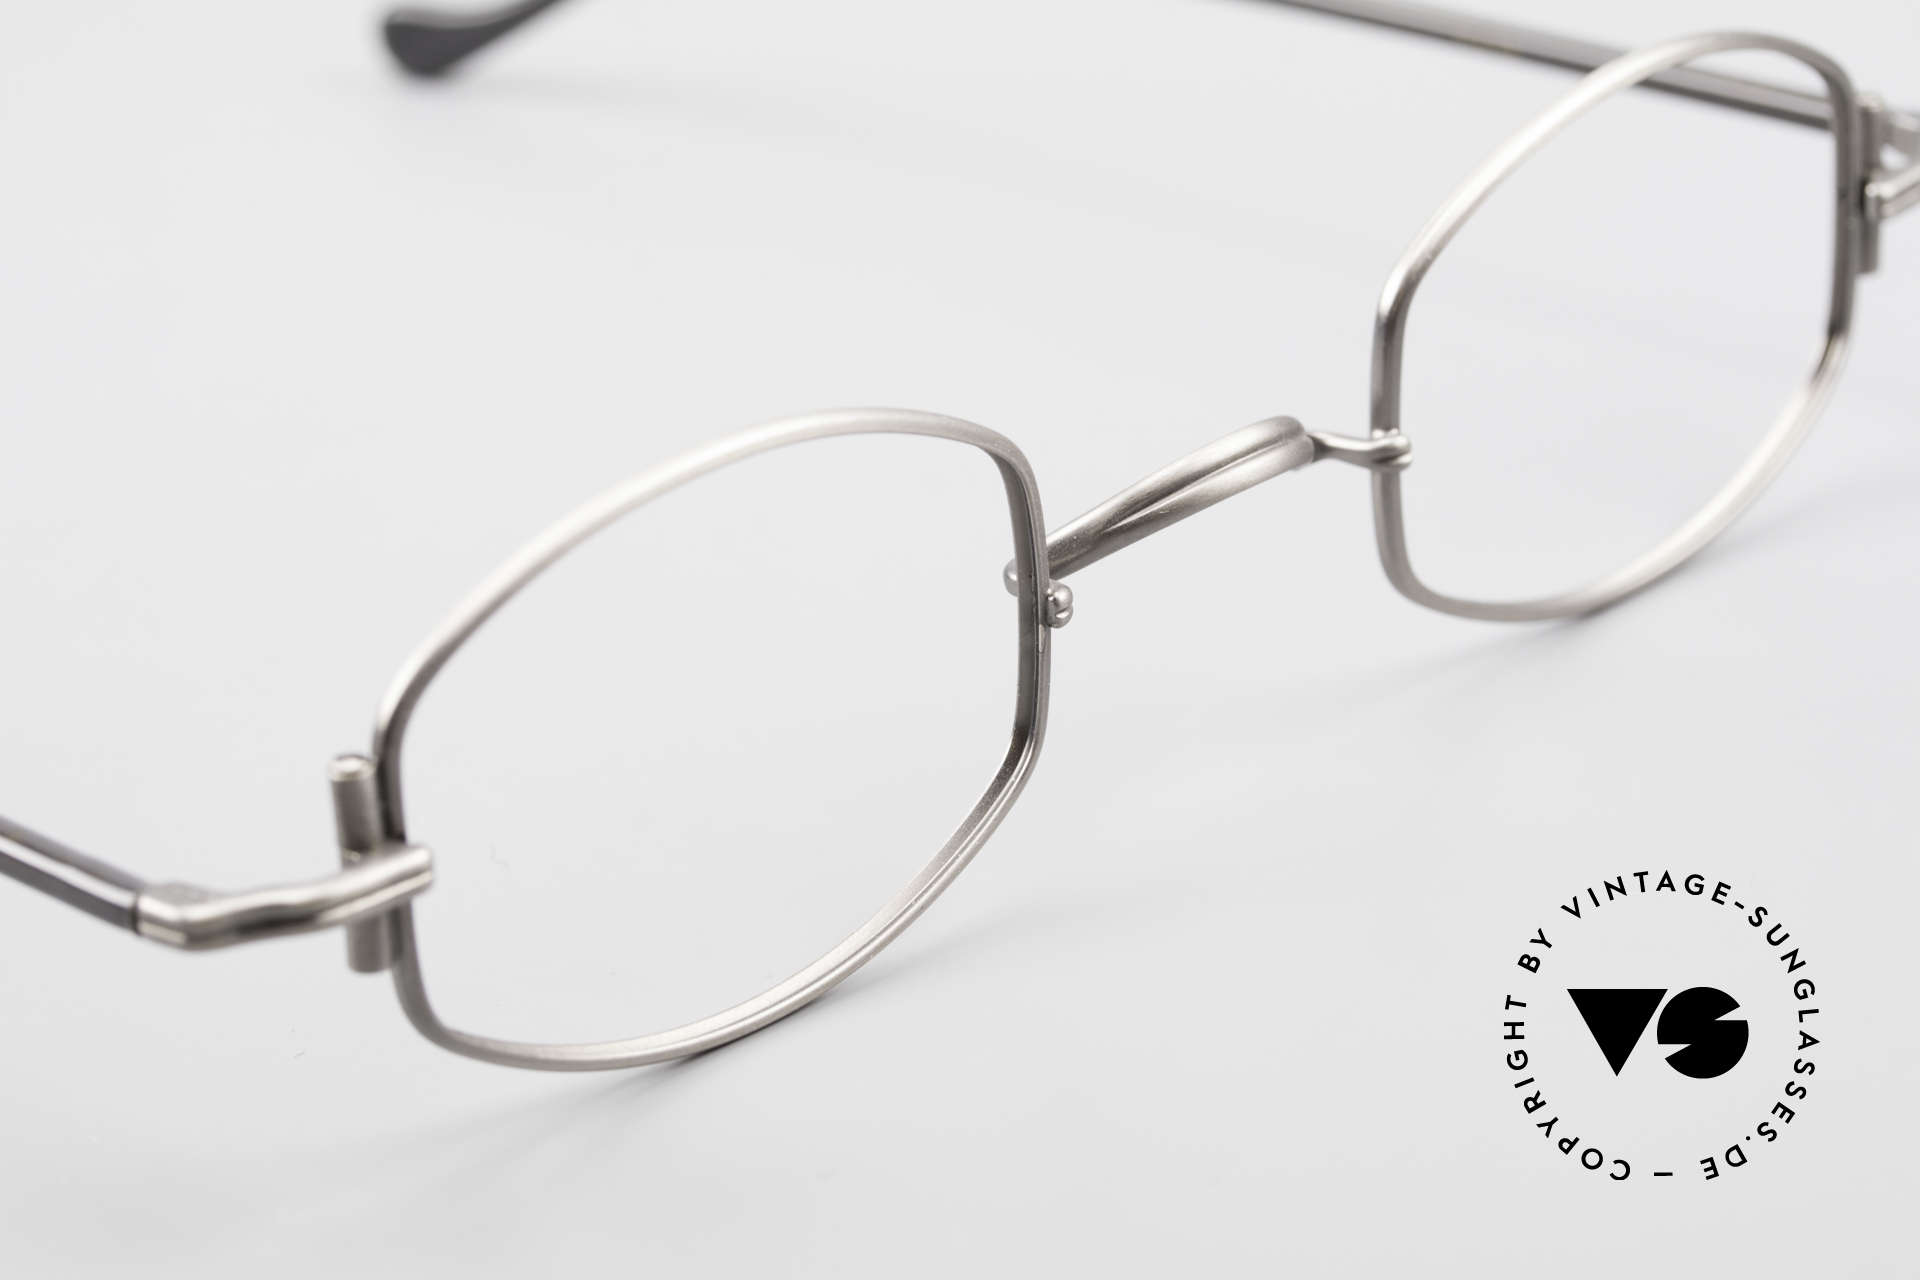 Lunor XA 03 Extraordinary Eyeglass Design, unworn RARITY (for all lovers of quality) from app. 1996, Made for Men and Women